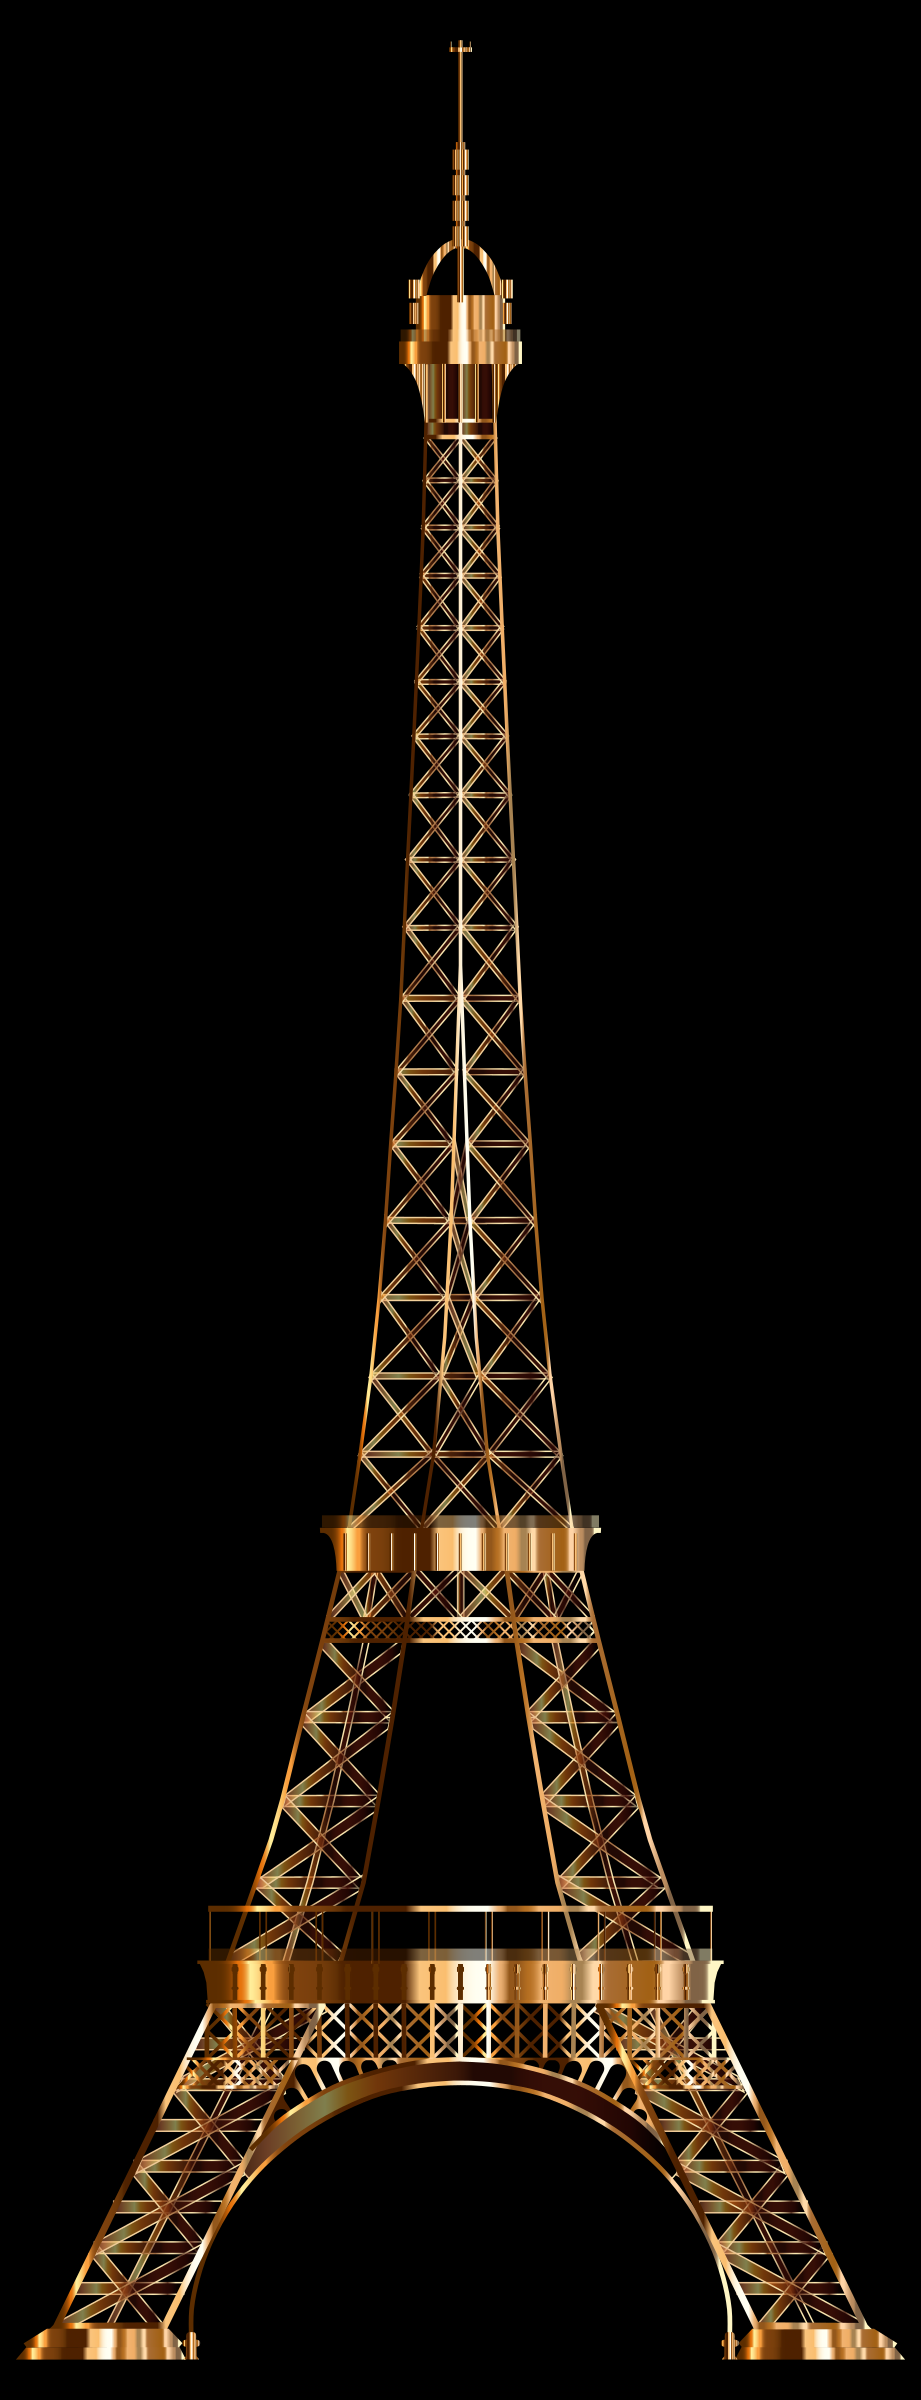 Eiffel Tower Shiny Copper by GDJ